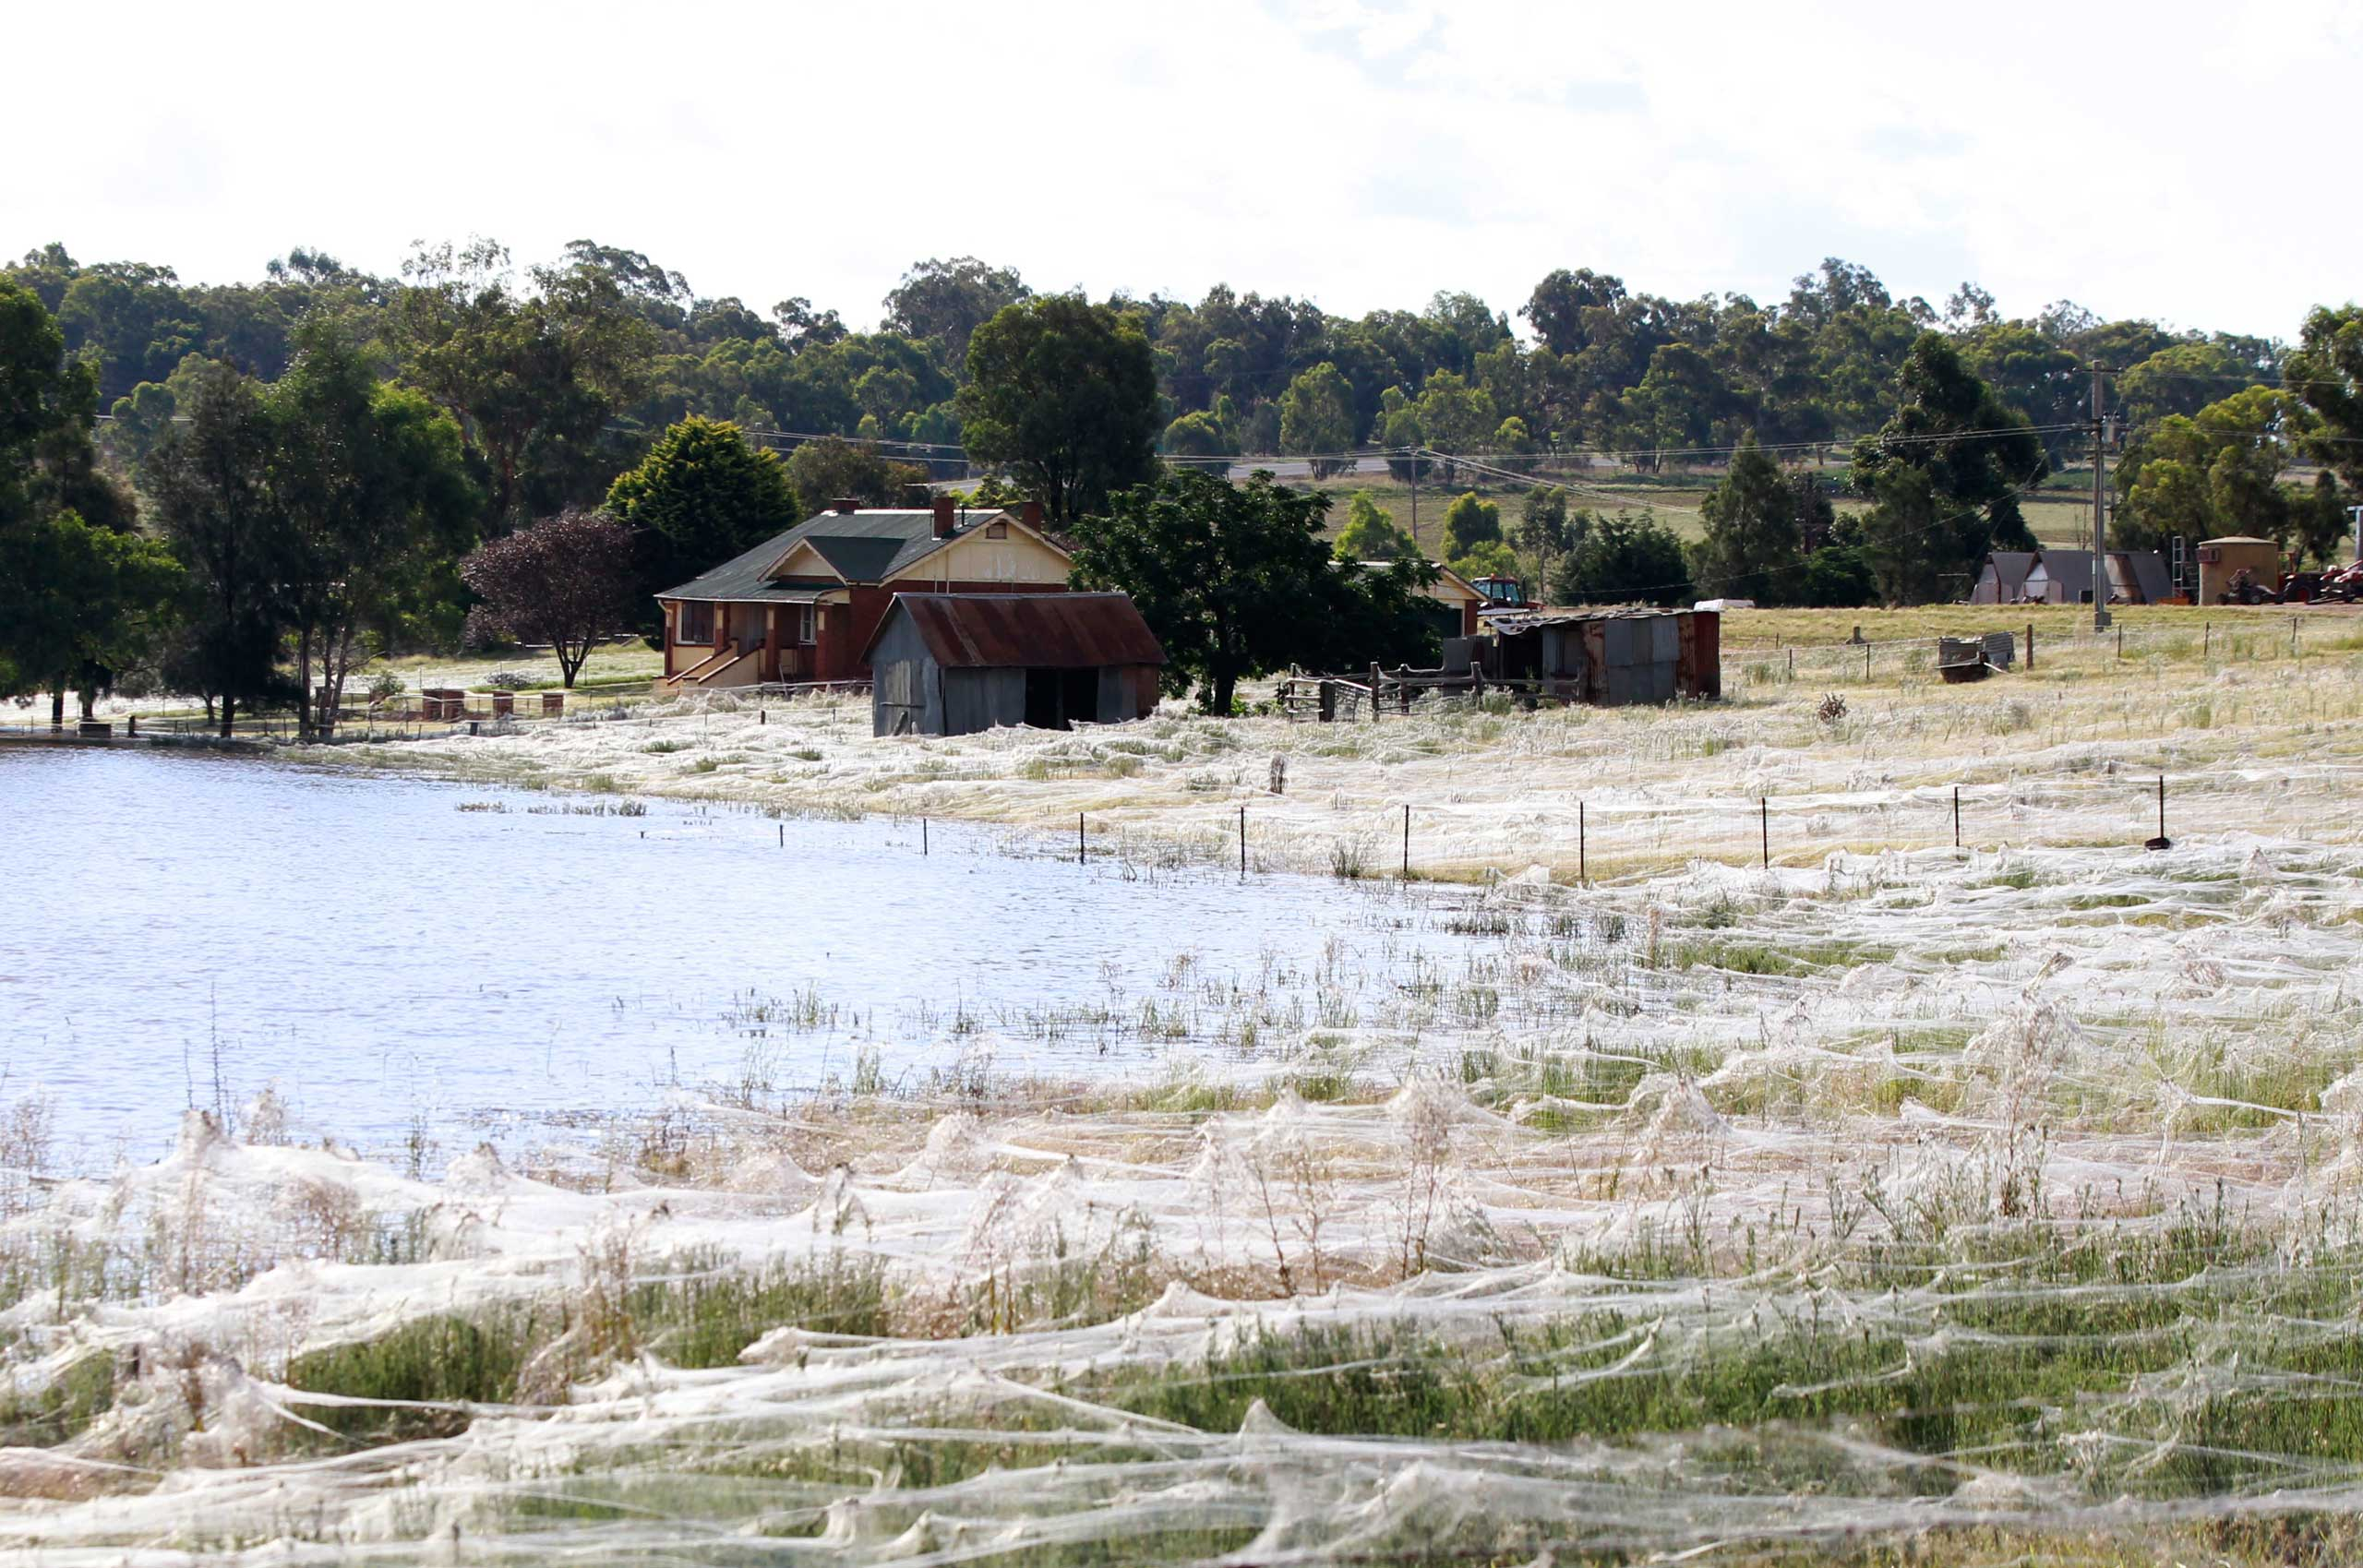 A house is surrounded by spiderwebs next to flood waters in Wagga Wagga, Australia.